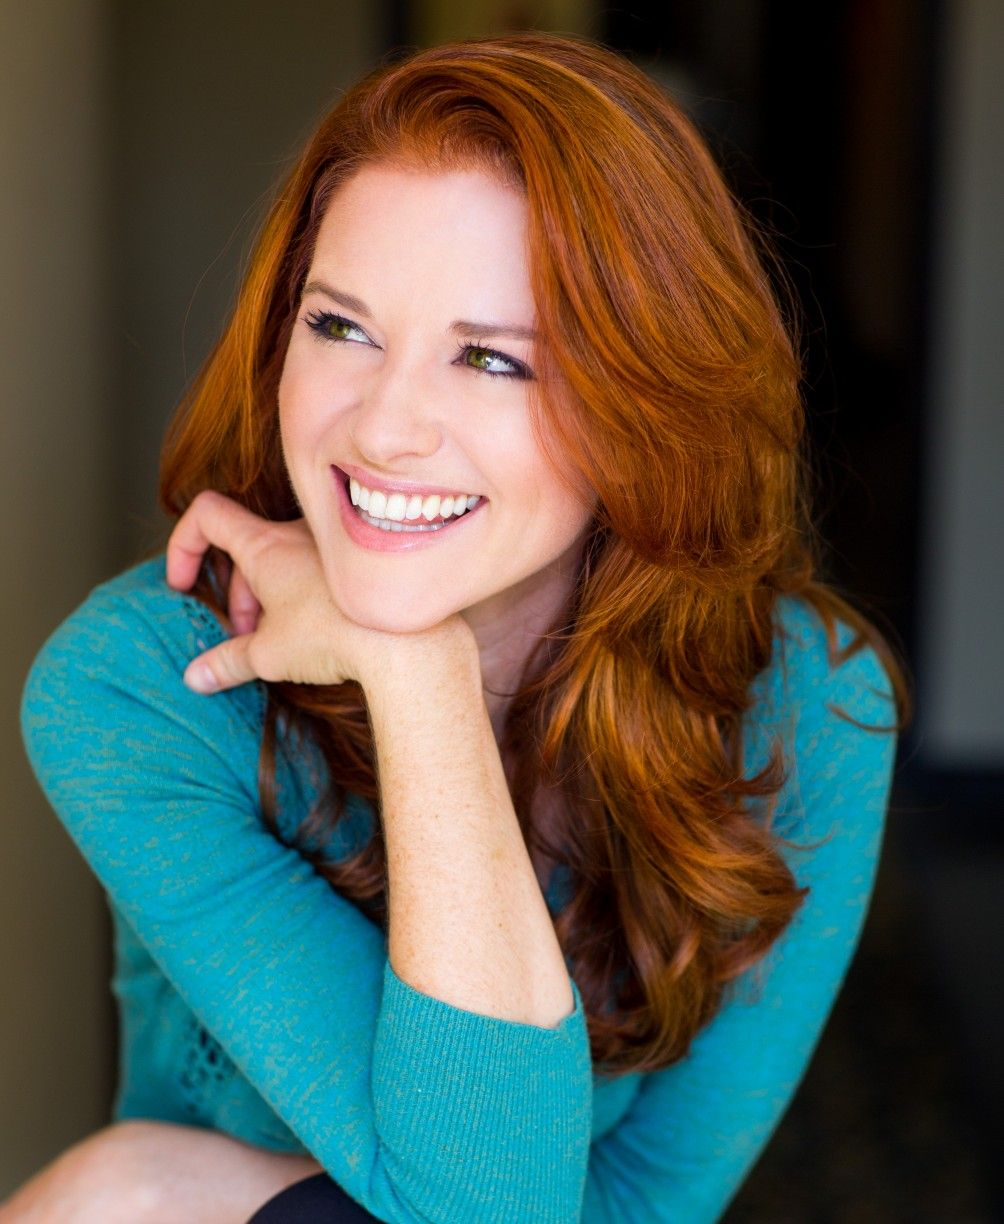 GreysAnatomy star Sarah Drew sat down with Cliche in the April/May ...